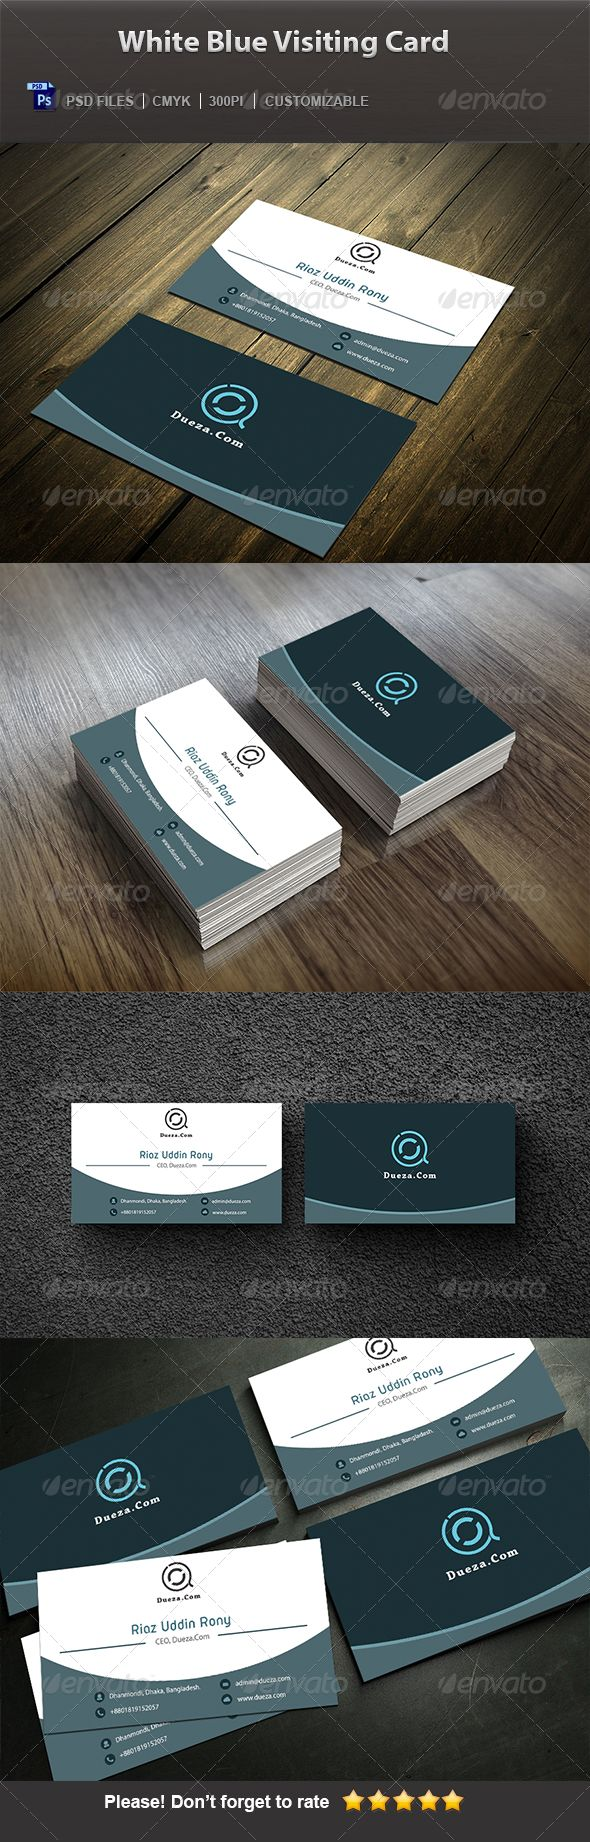 Creative Business Cards: White Blue Visiting Card